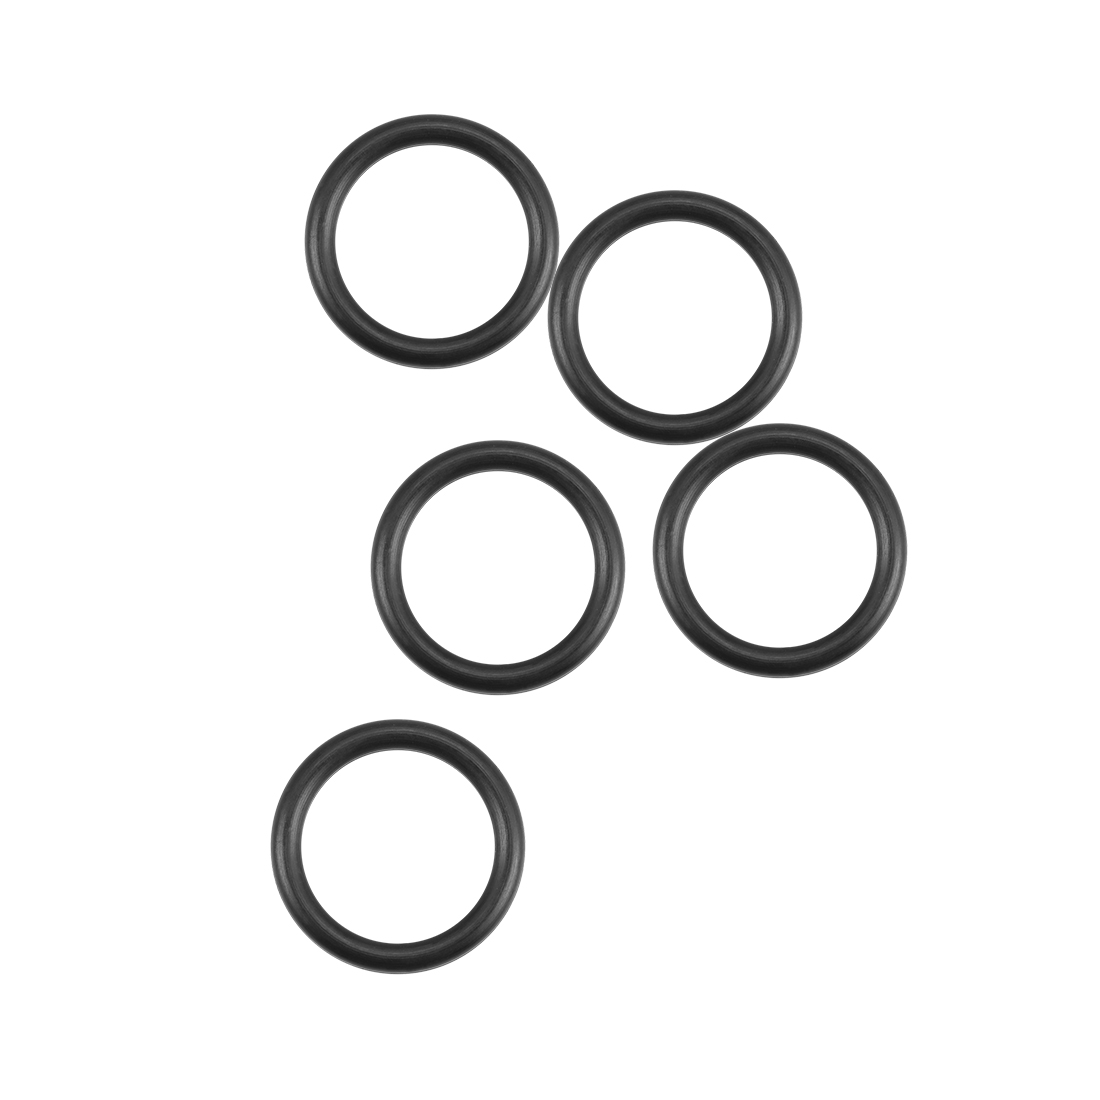 O-Rings Nitrile Rubber 10.3mm x 13.9mm x 1.8mm Round Seal Gasket 5Pcs